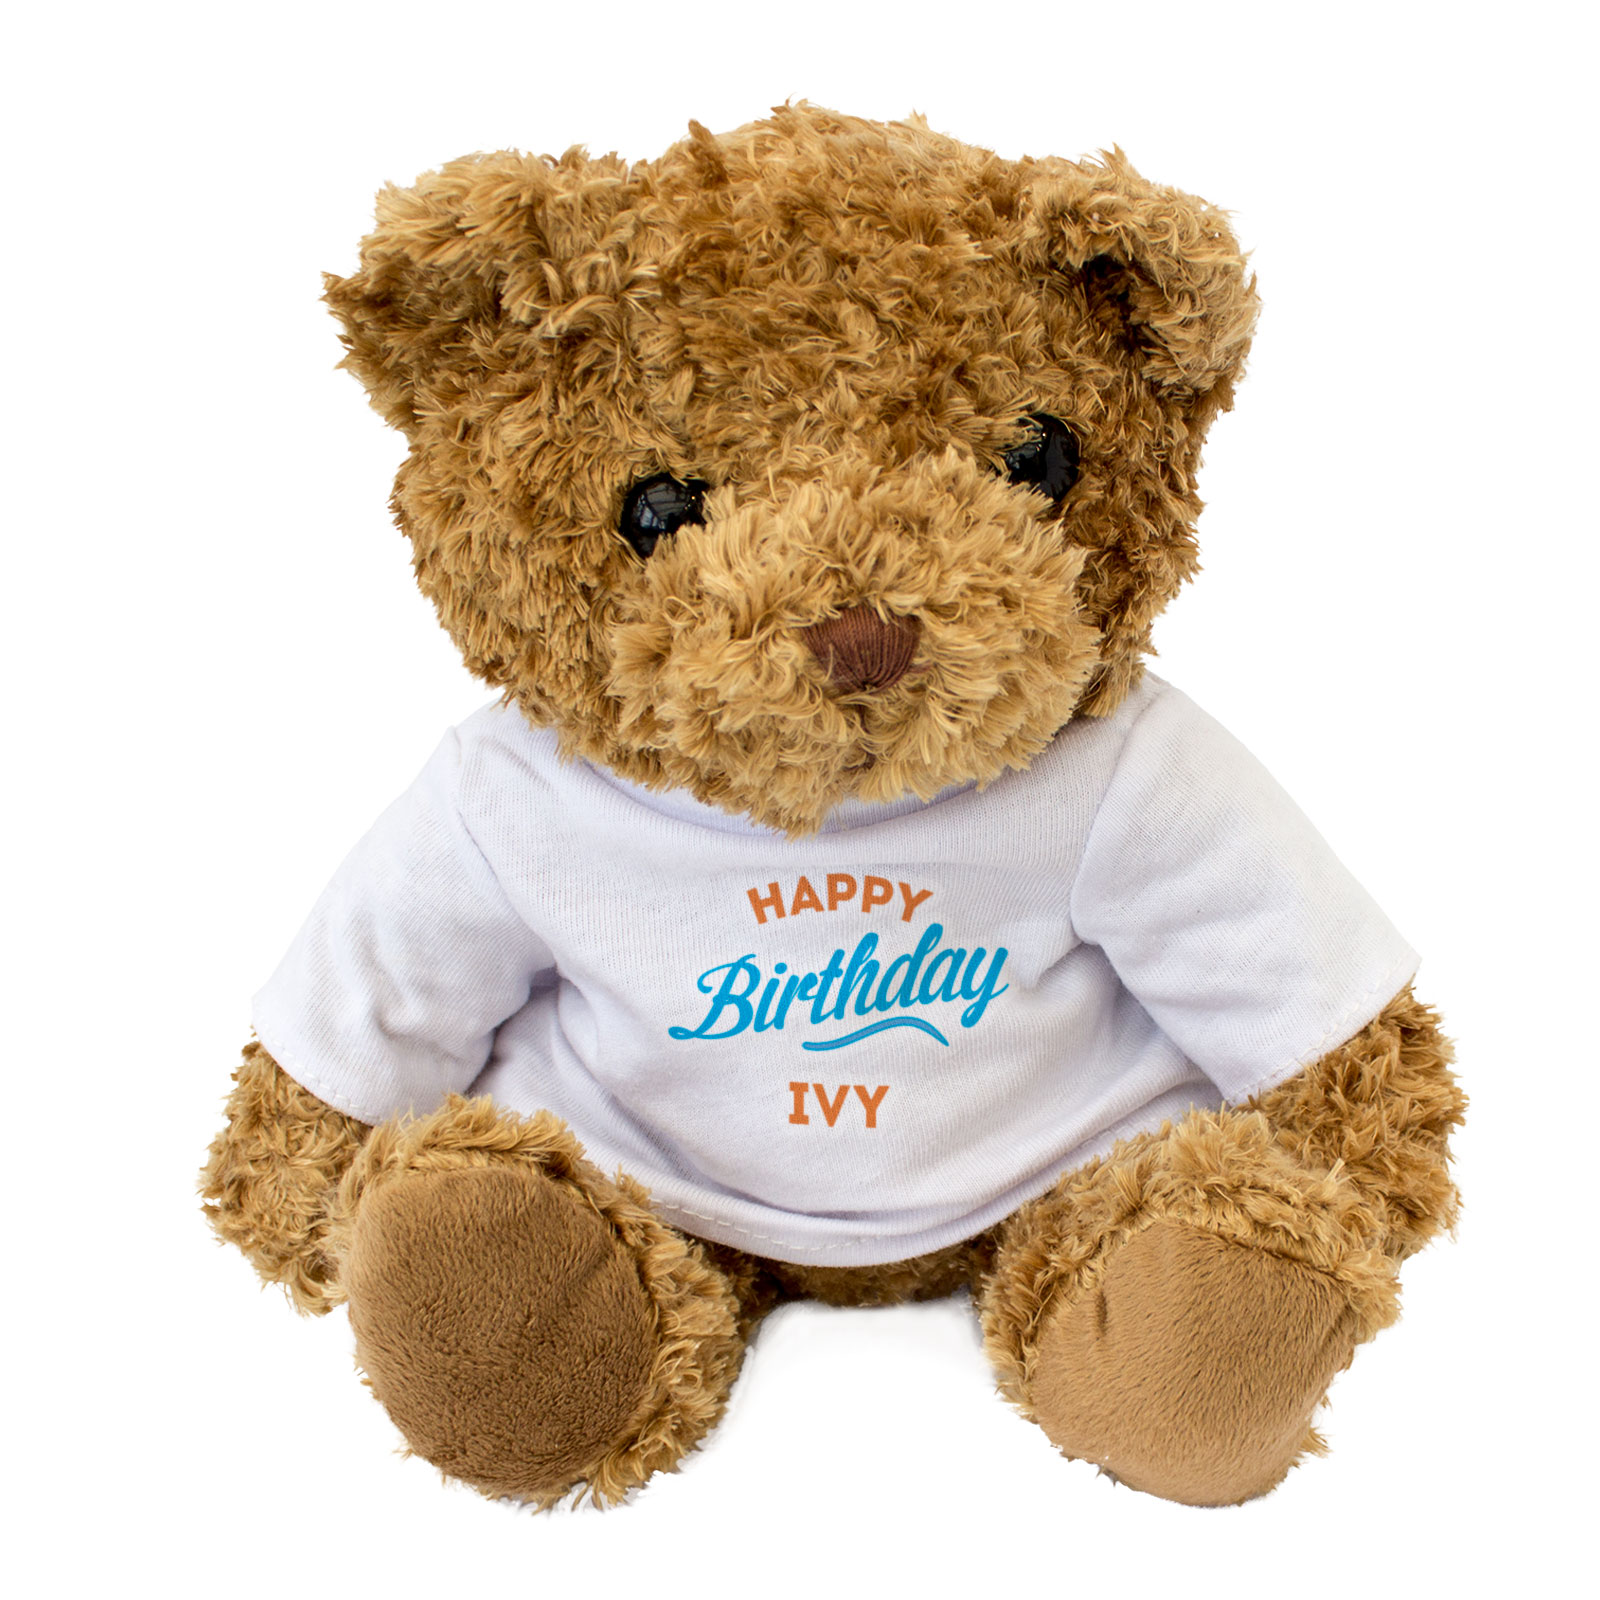 happy birthday ivy ; happy-birthday-ivy-bear-2